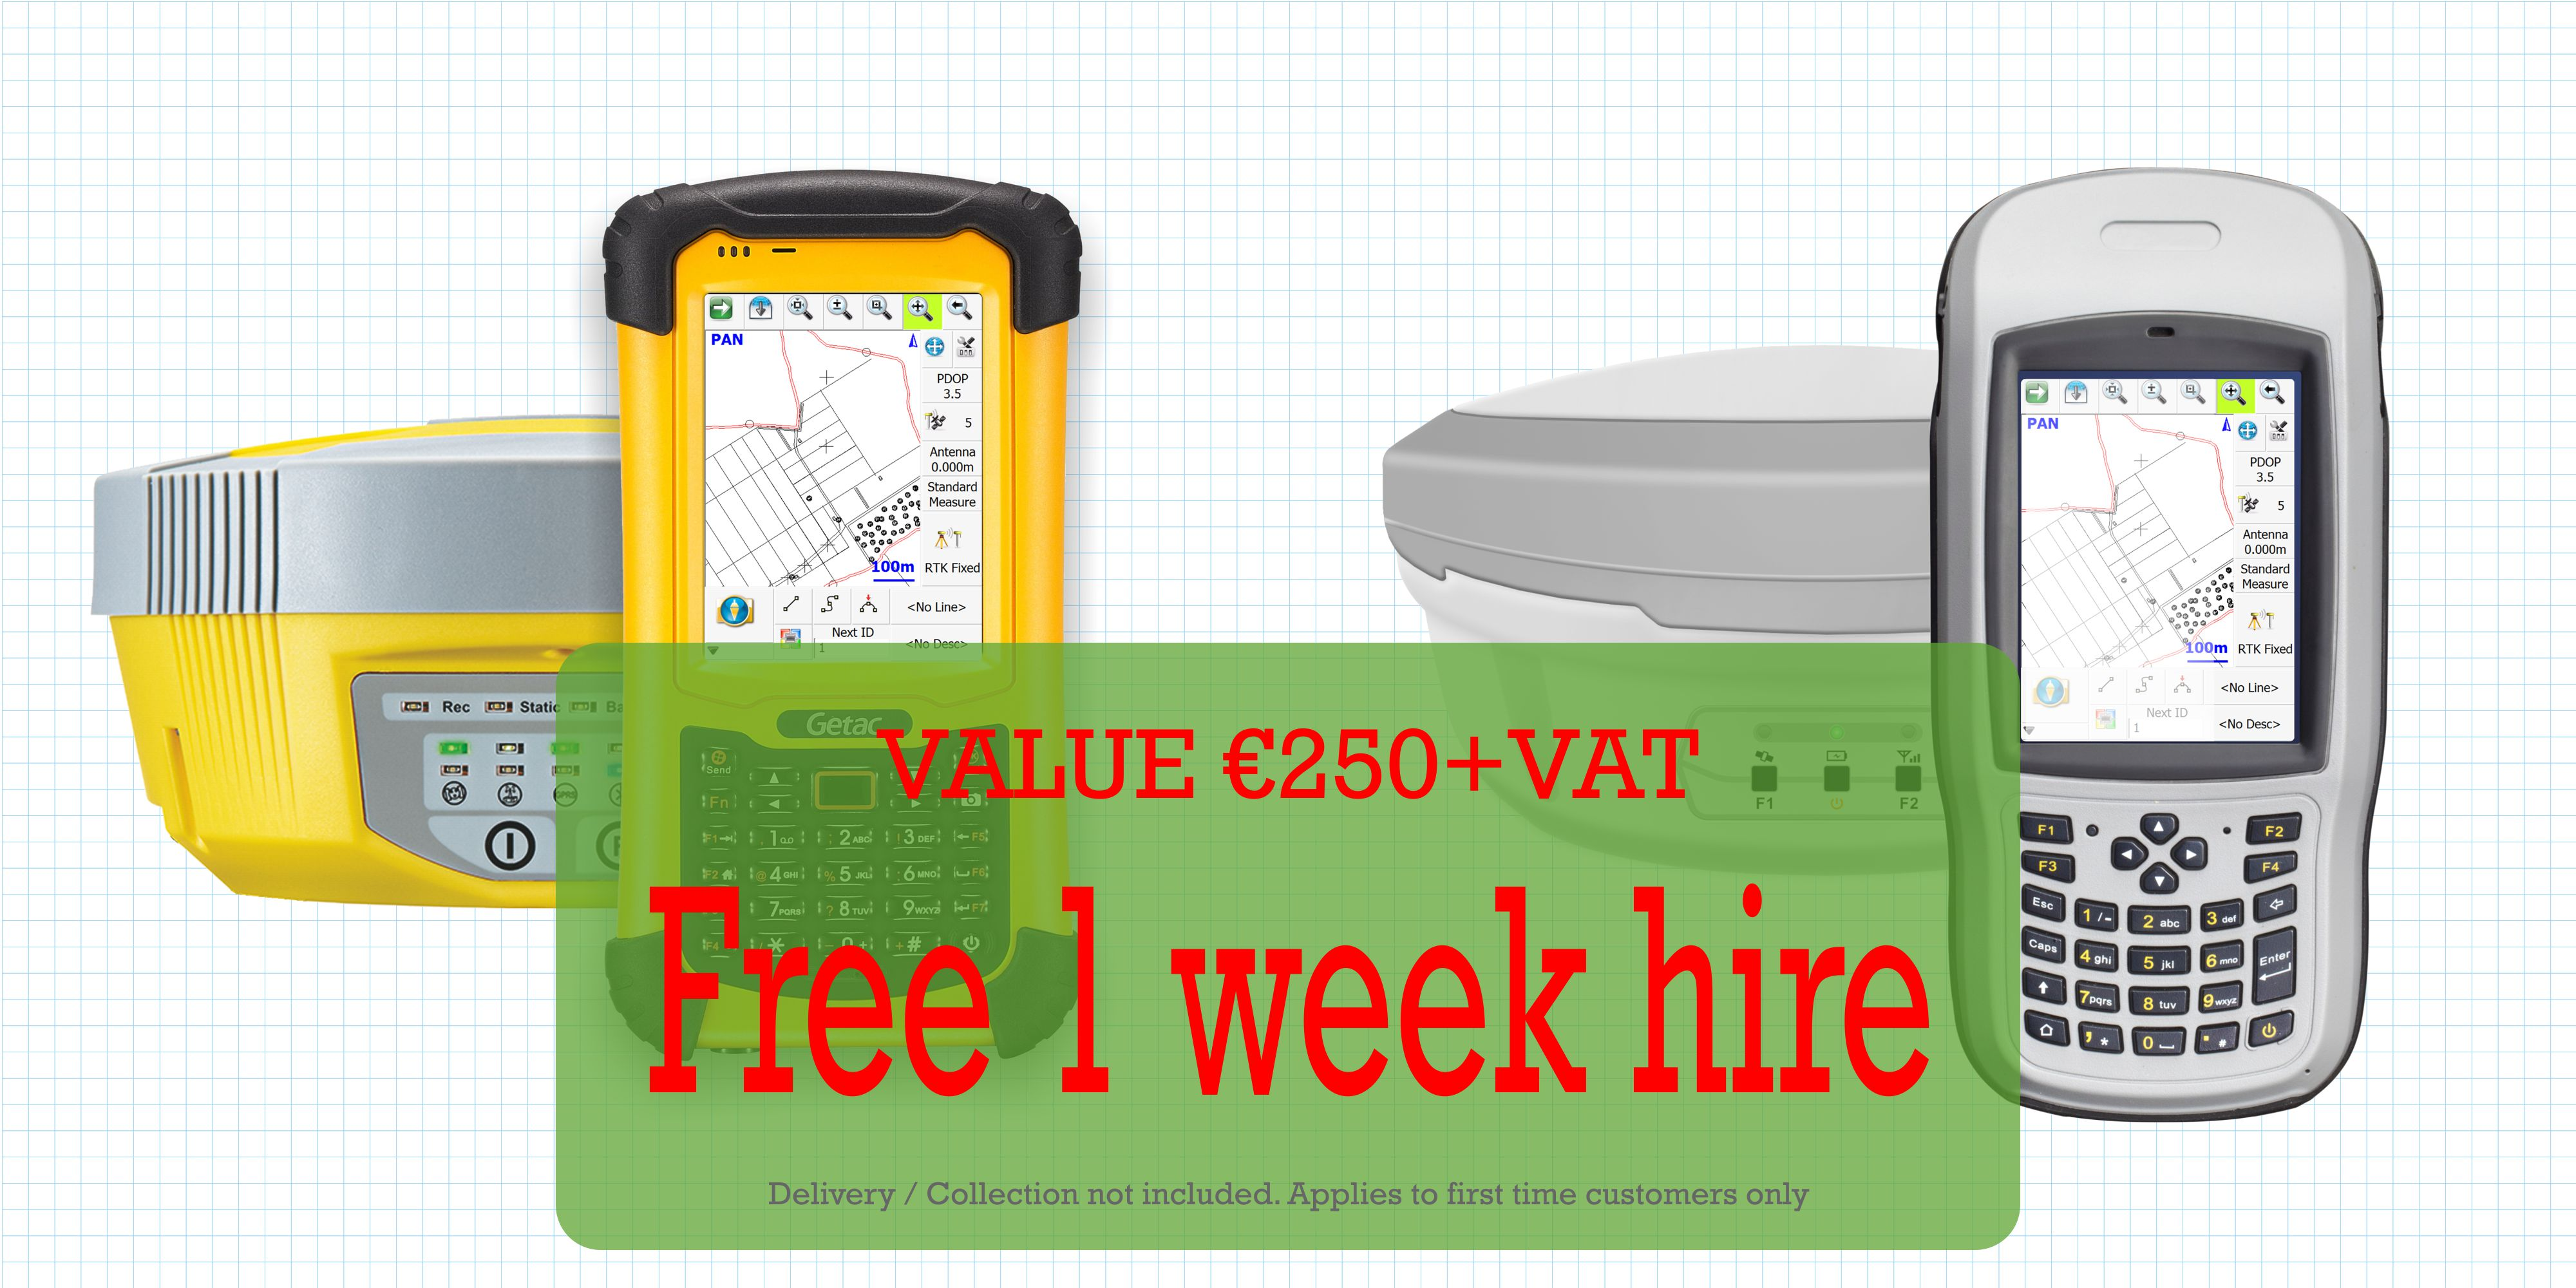 free one week hire with gps course